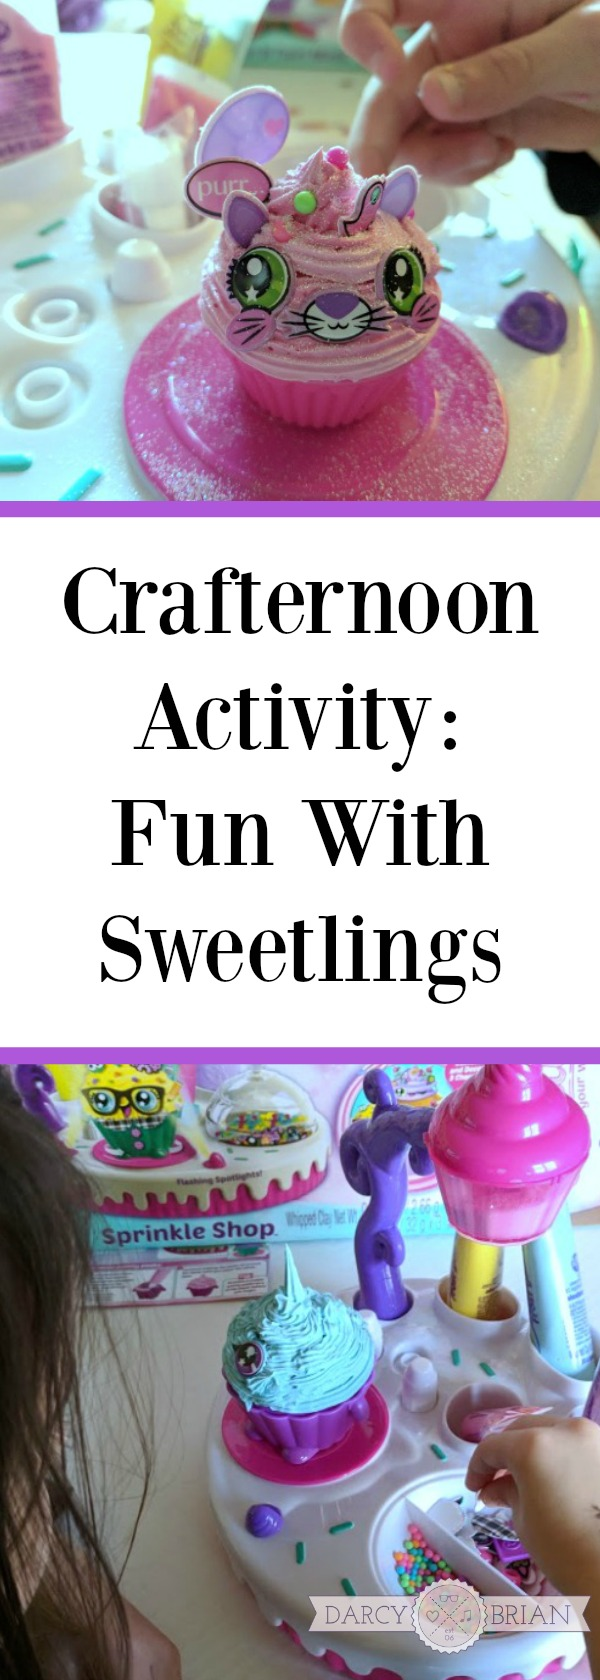 AD: Looking for a craft activity that sparks your child's imagination? Check out the fun of a crafternoon activity with Sweetlings. Makes a great Christmas gift for kids! #crafts #Christmas #kids